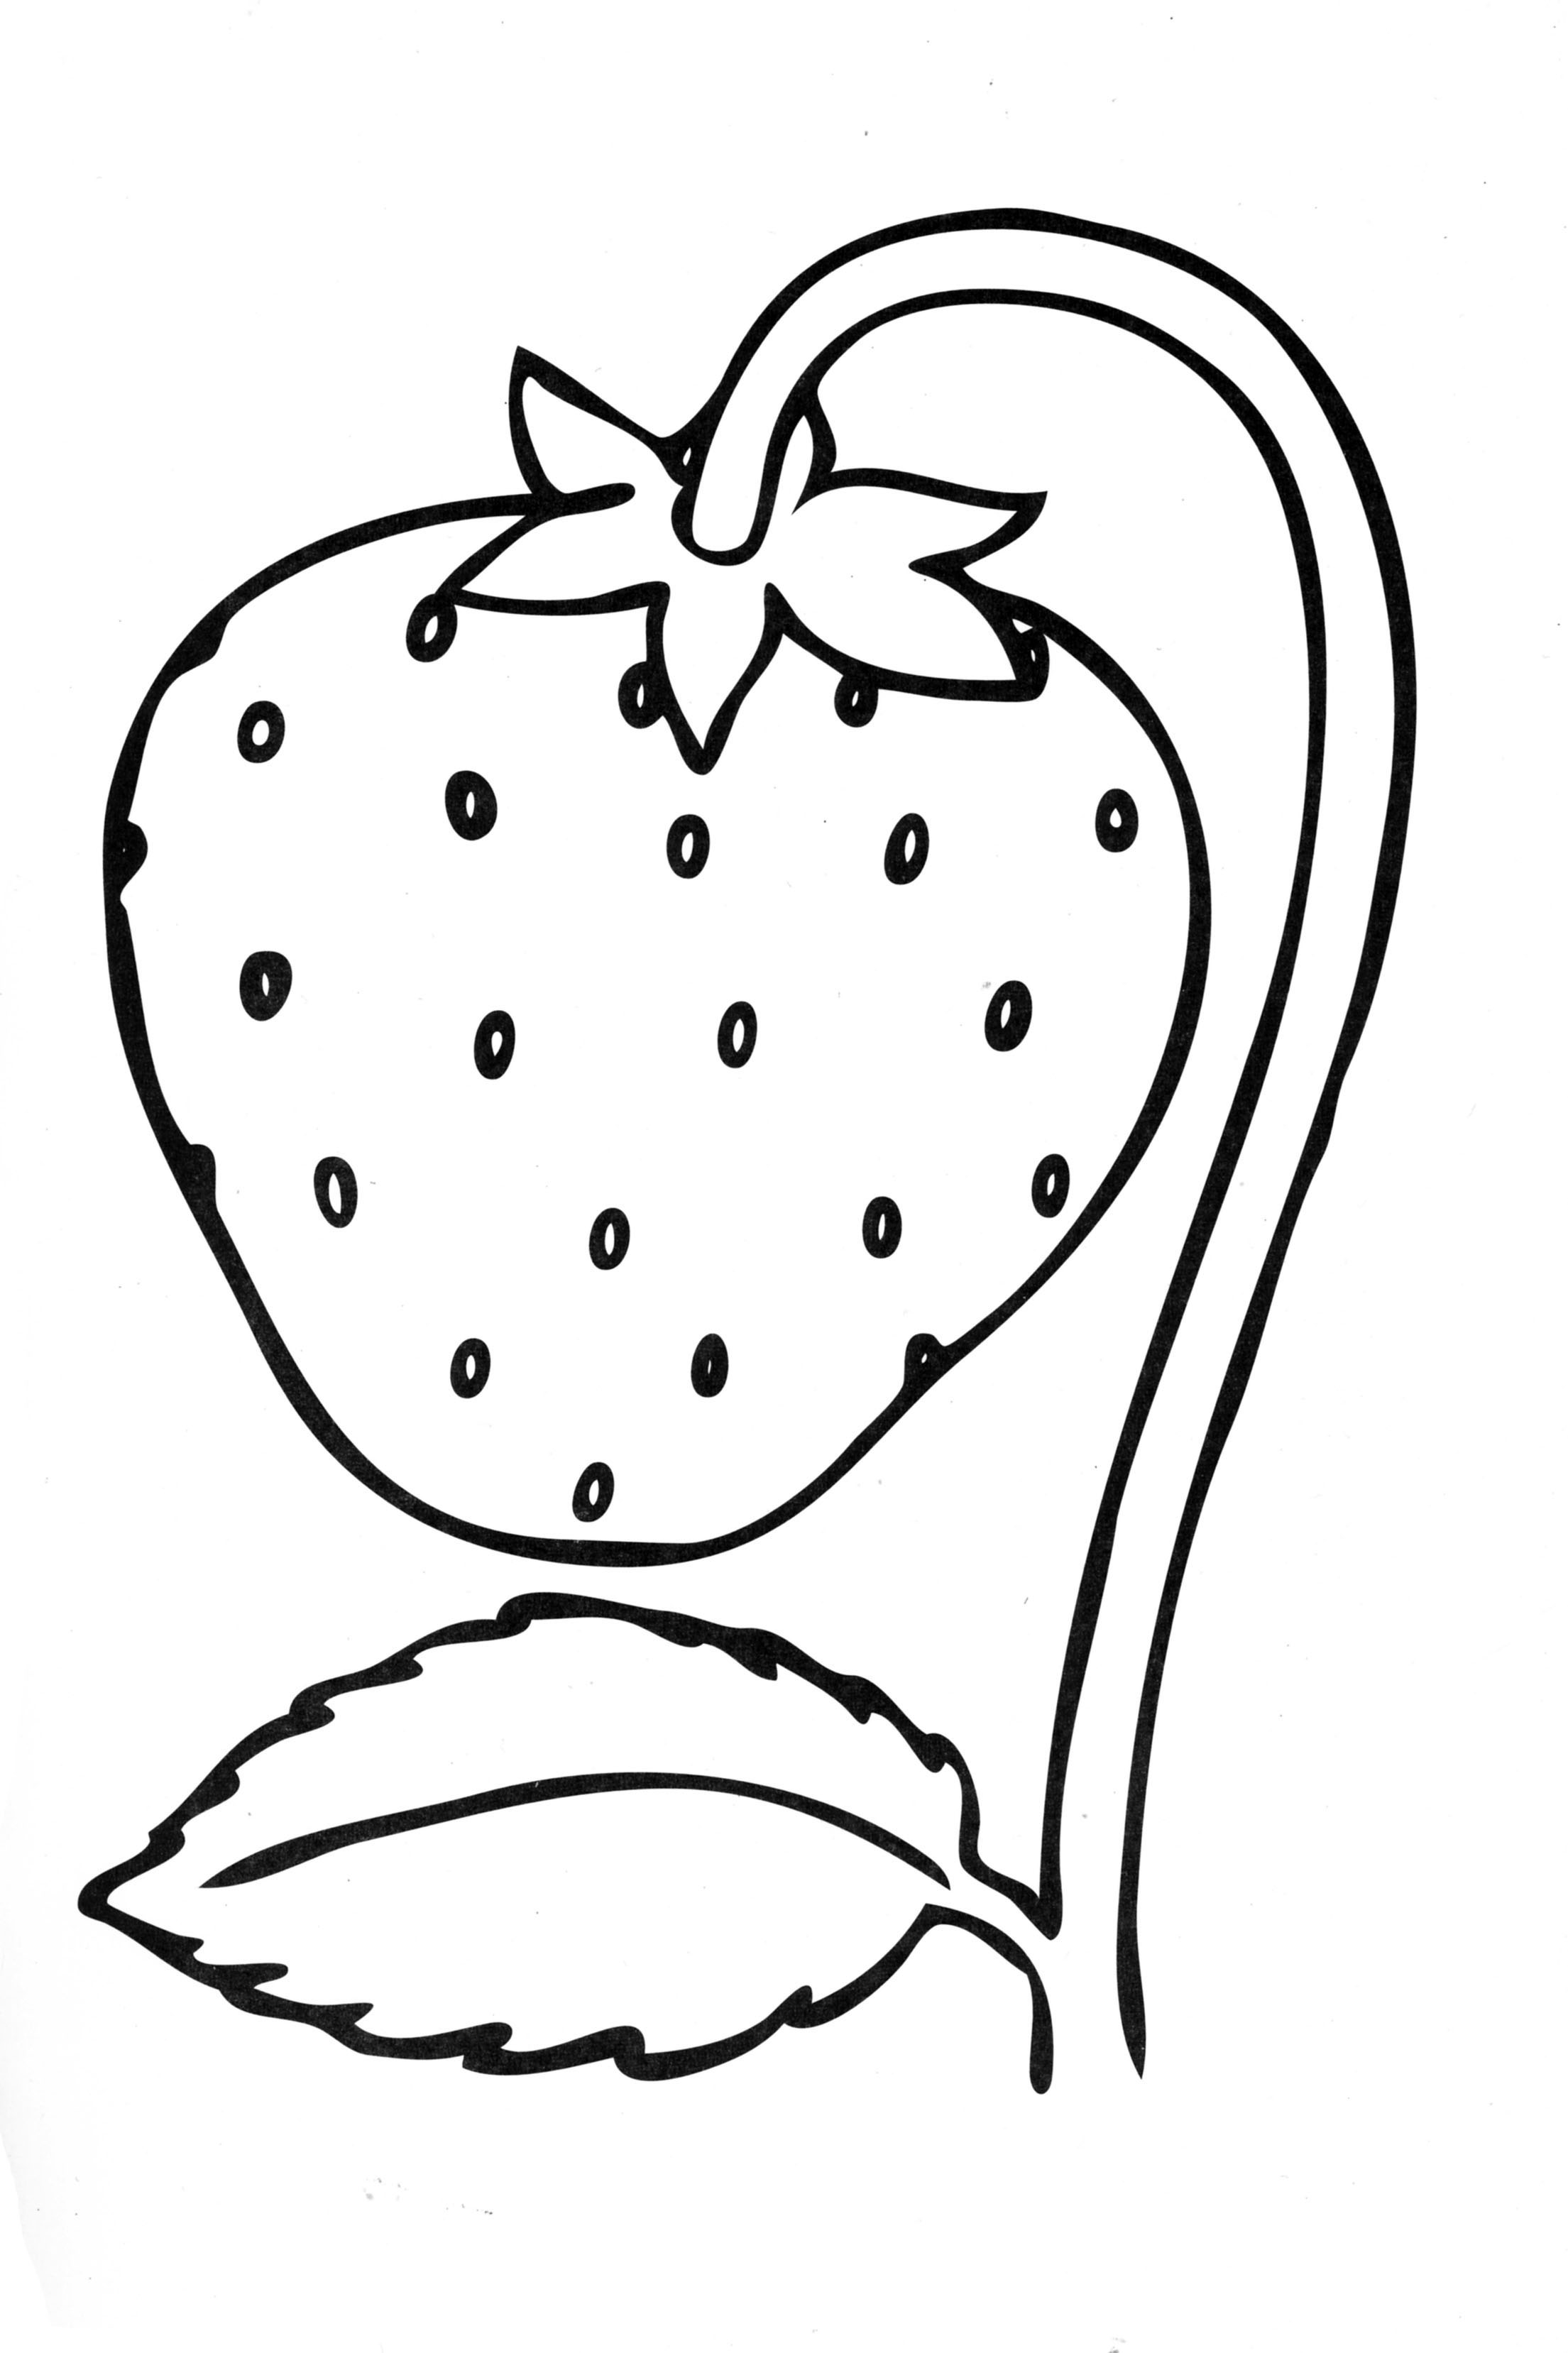 colouring pages of strawberry strawberry coloring page at getcoloringscom free pages strawberry colouring of